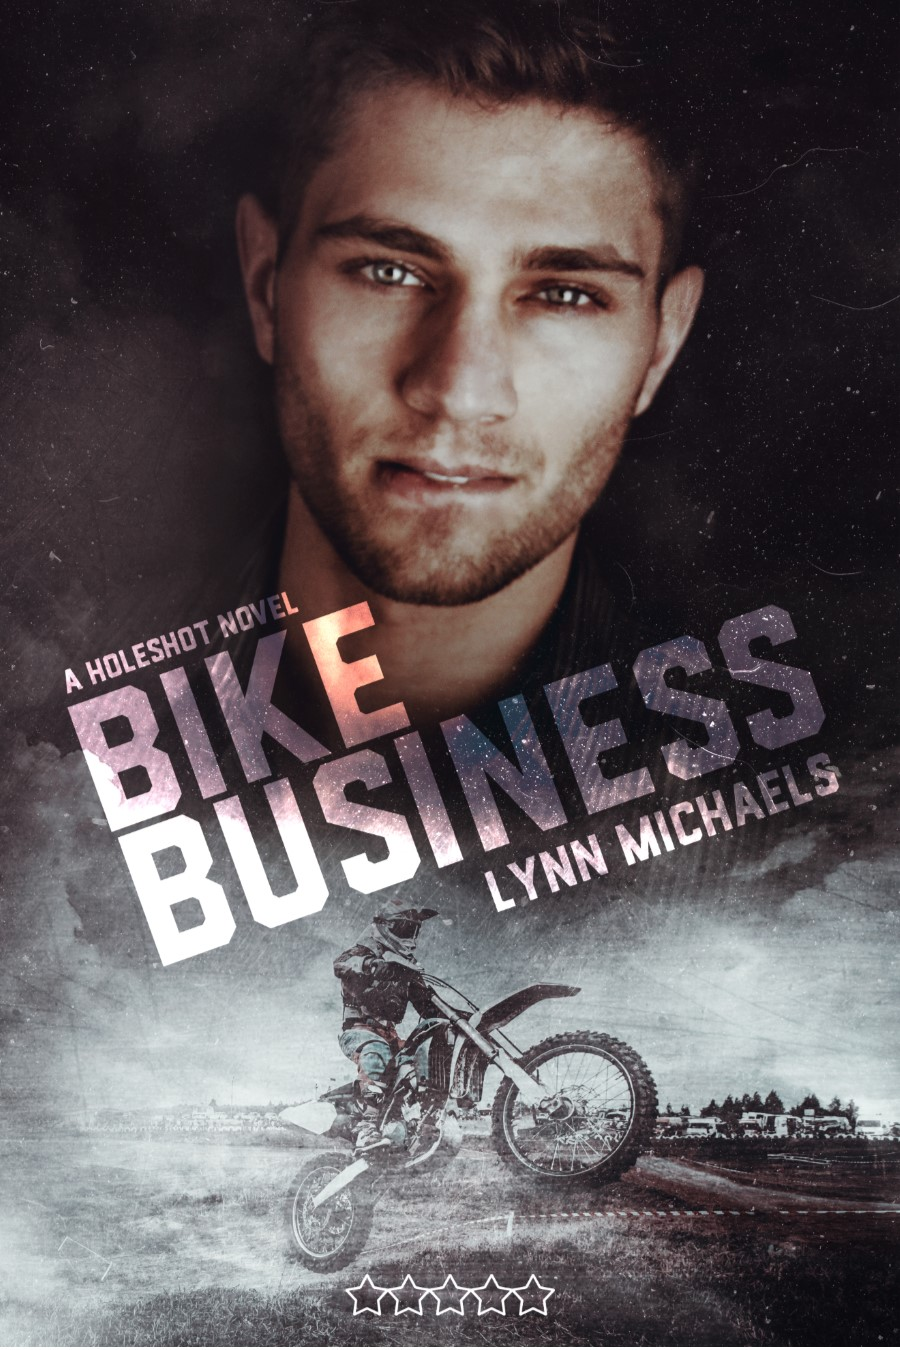 Guest Post and Giveaway: Bike Business by Lynn Michaels